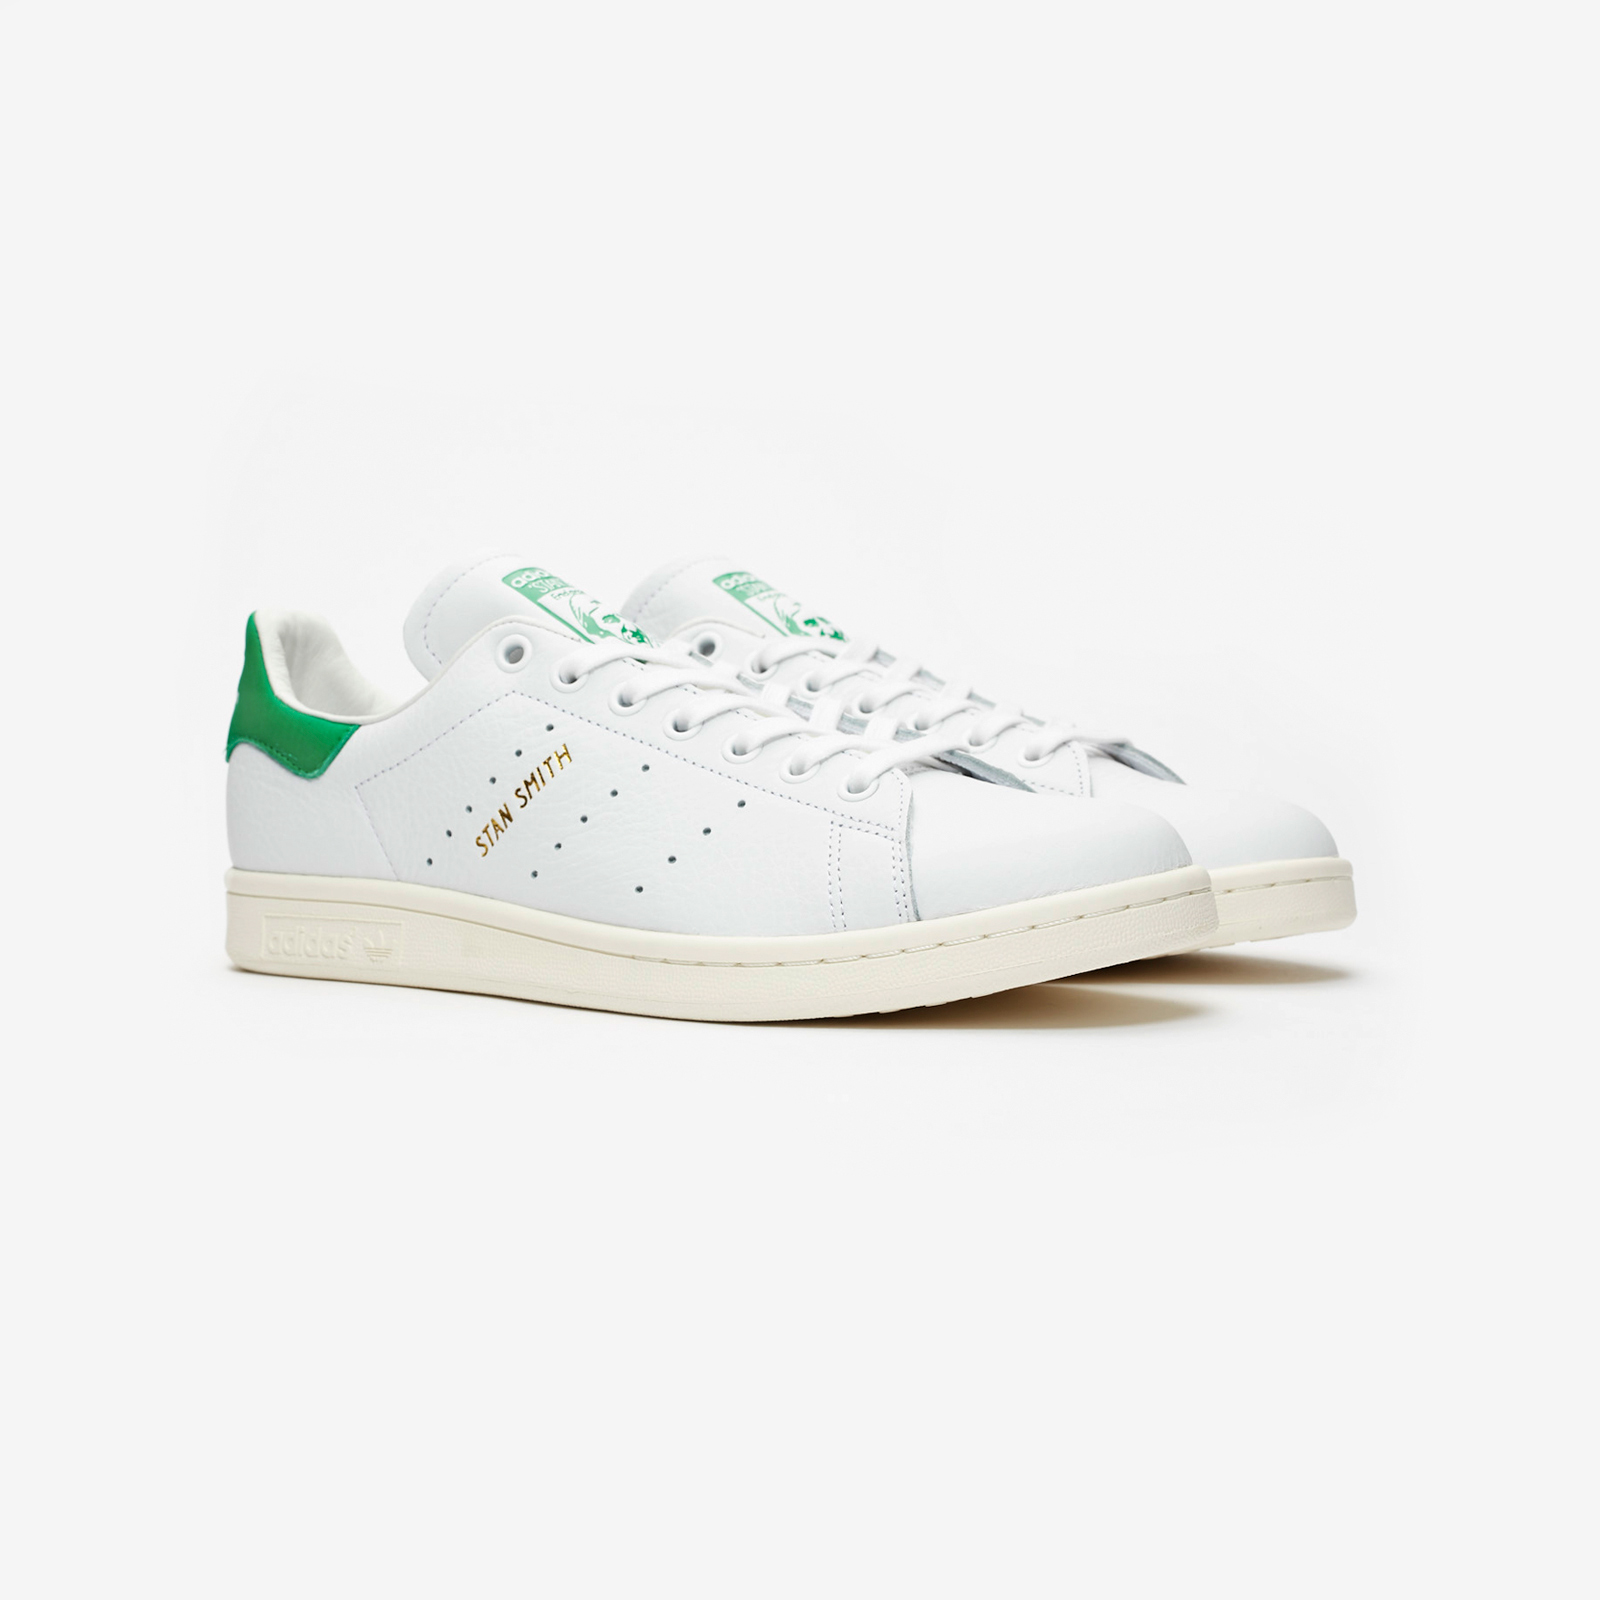 adidas Stan Smith - Ef7508 - Sneakersnstuff  2d98ccf45